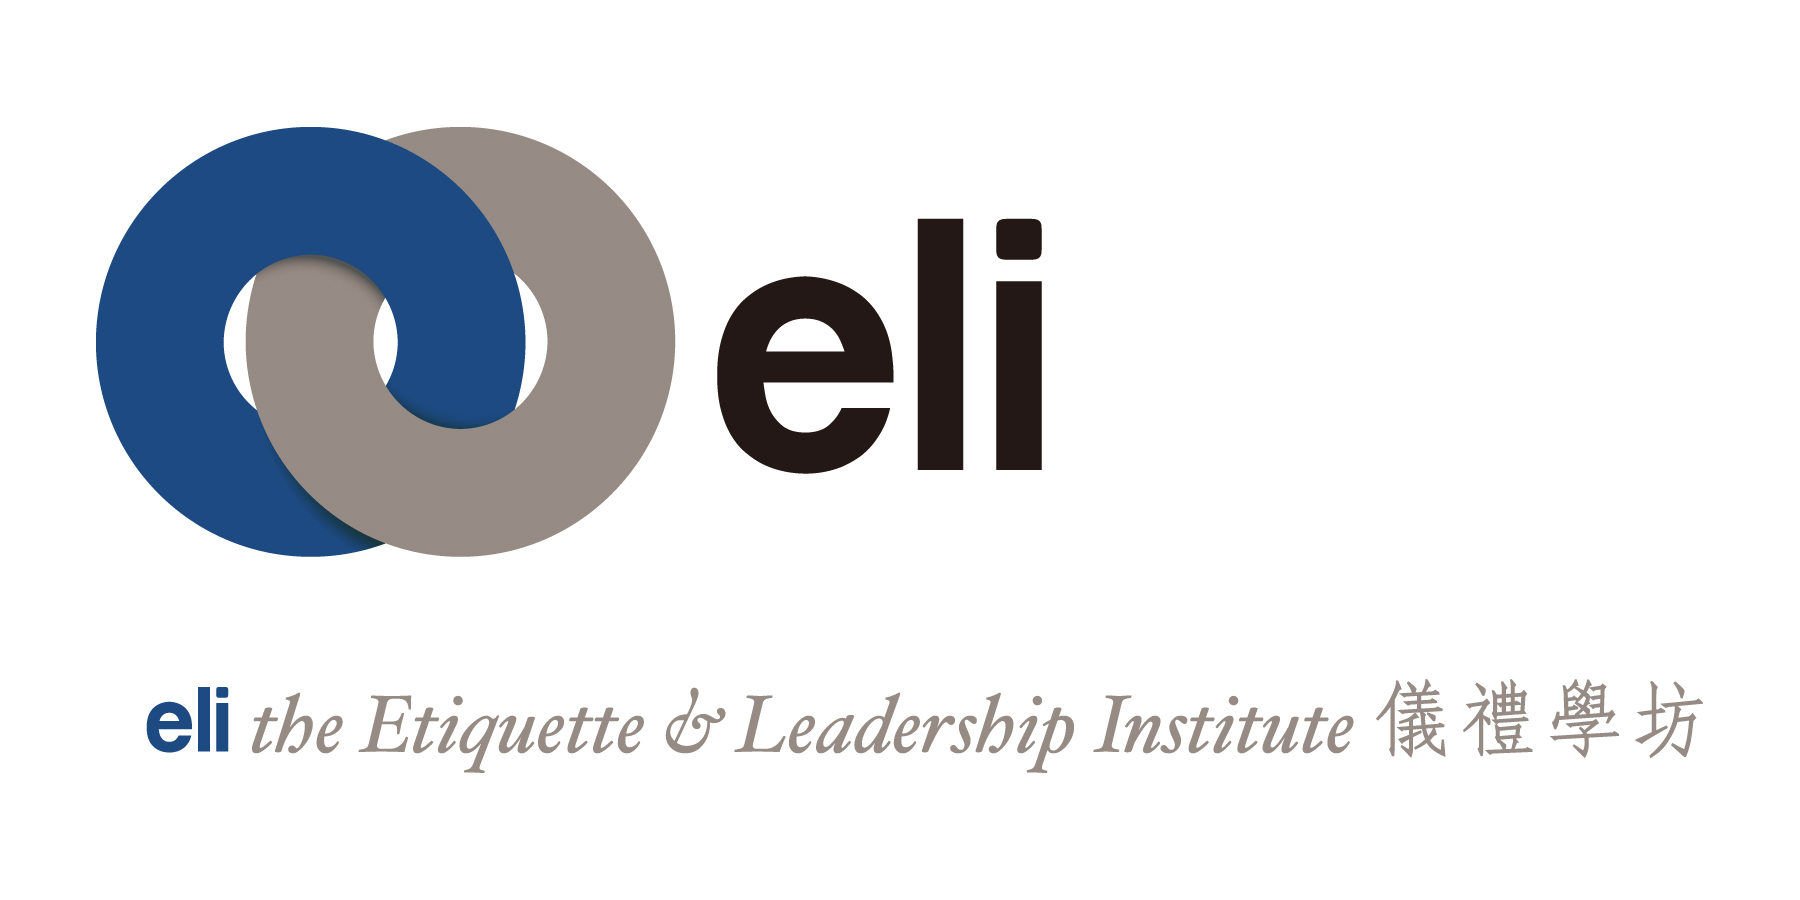 ELI, The Etiquette & Leadership Institute